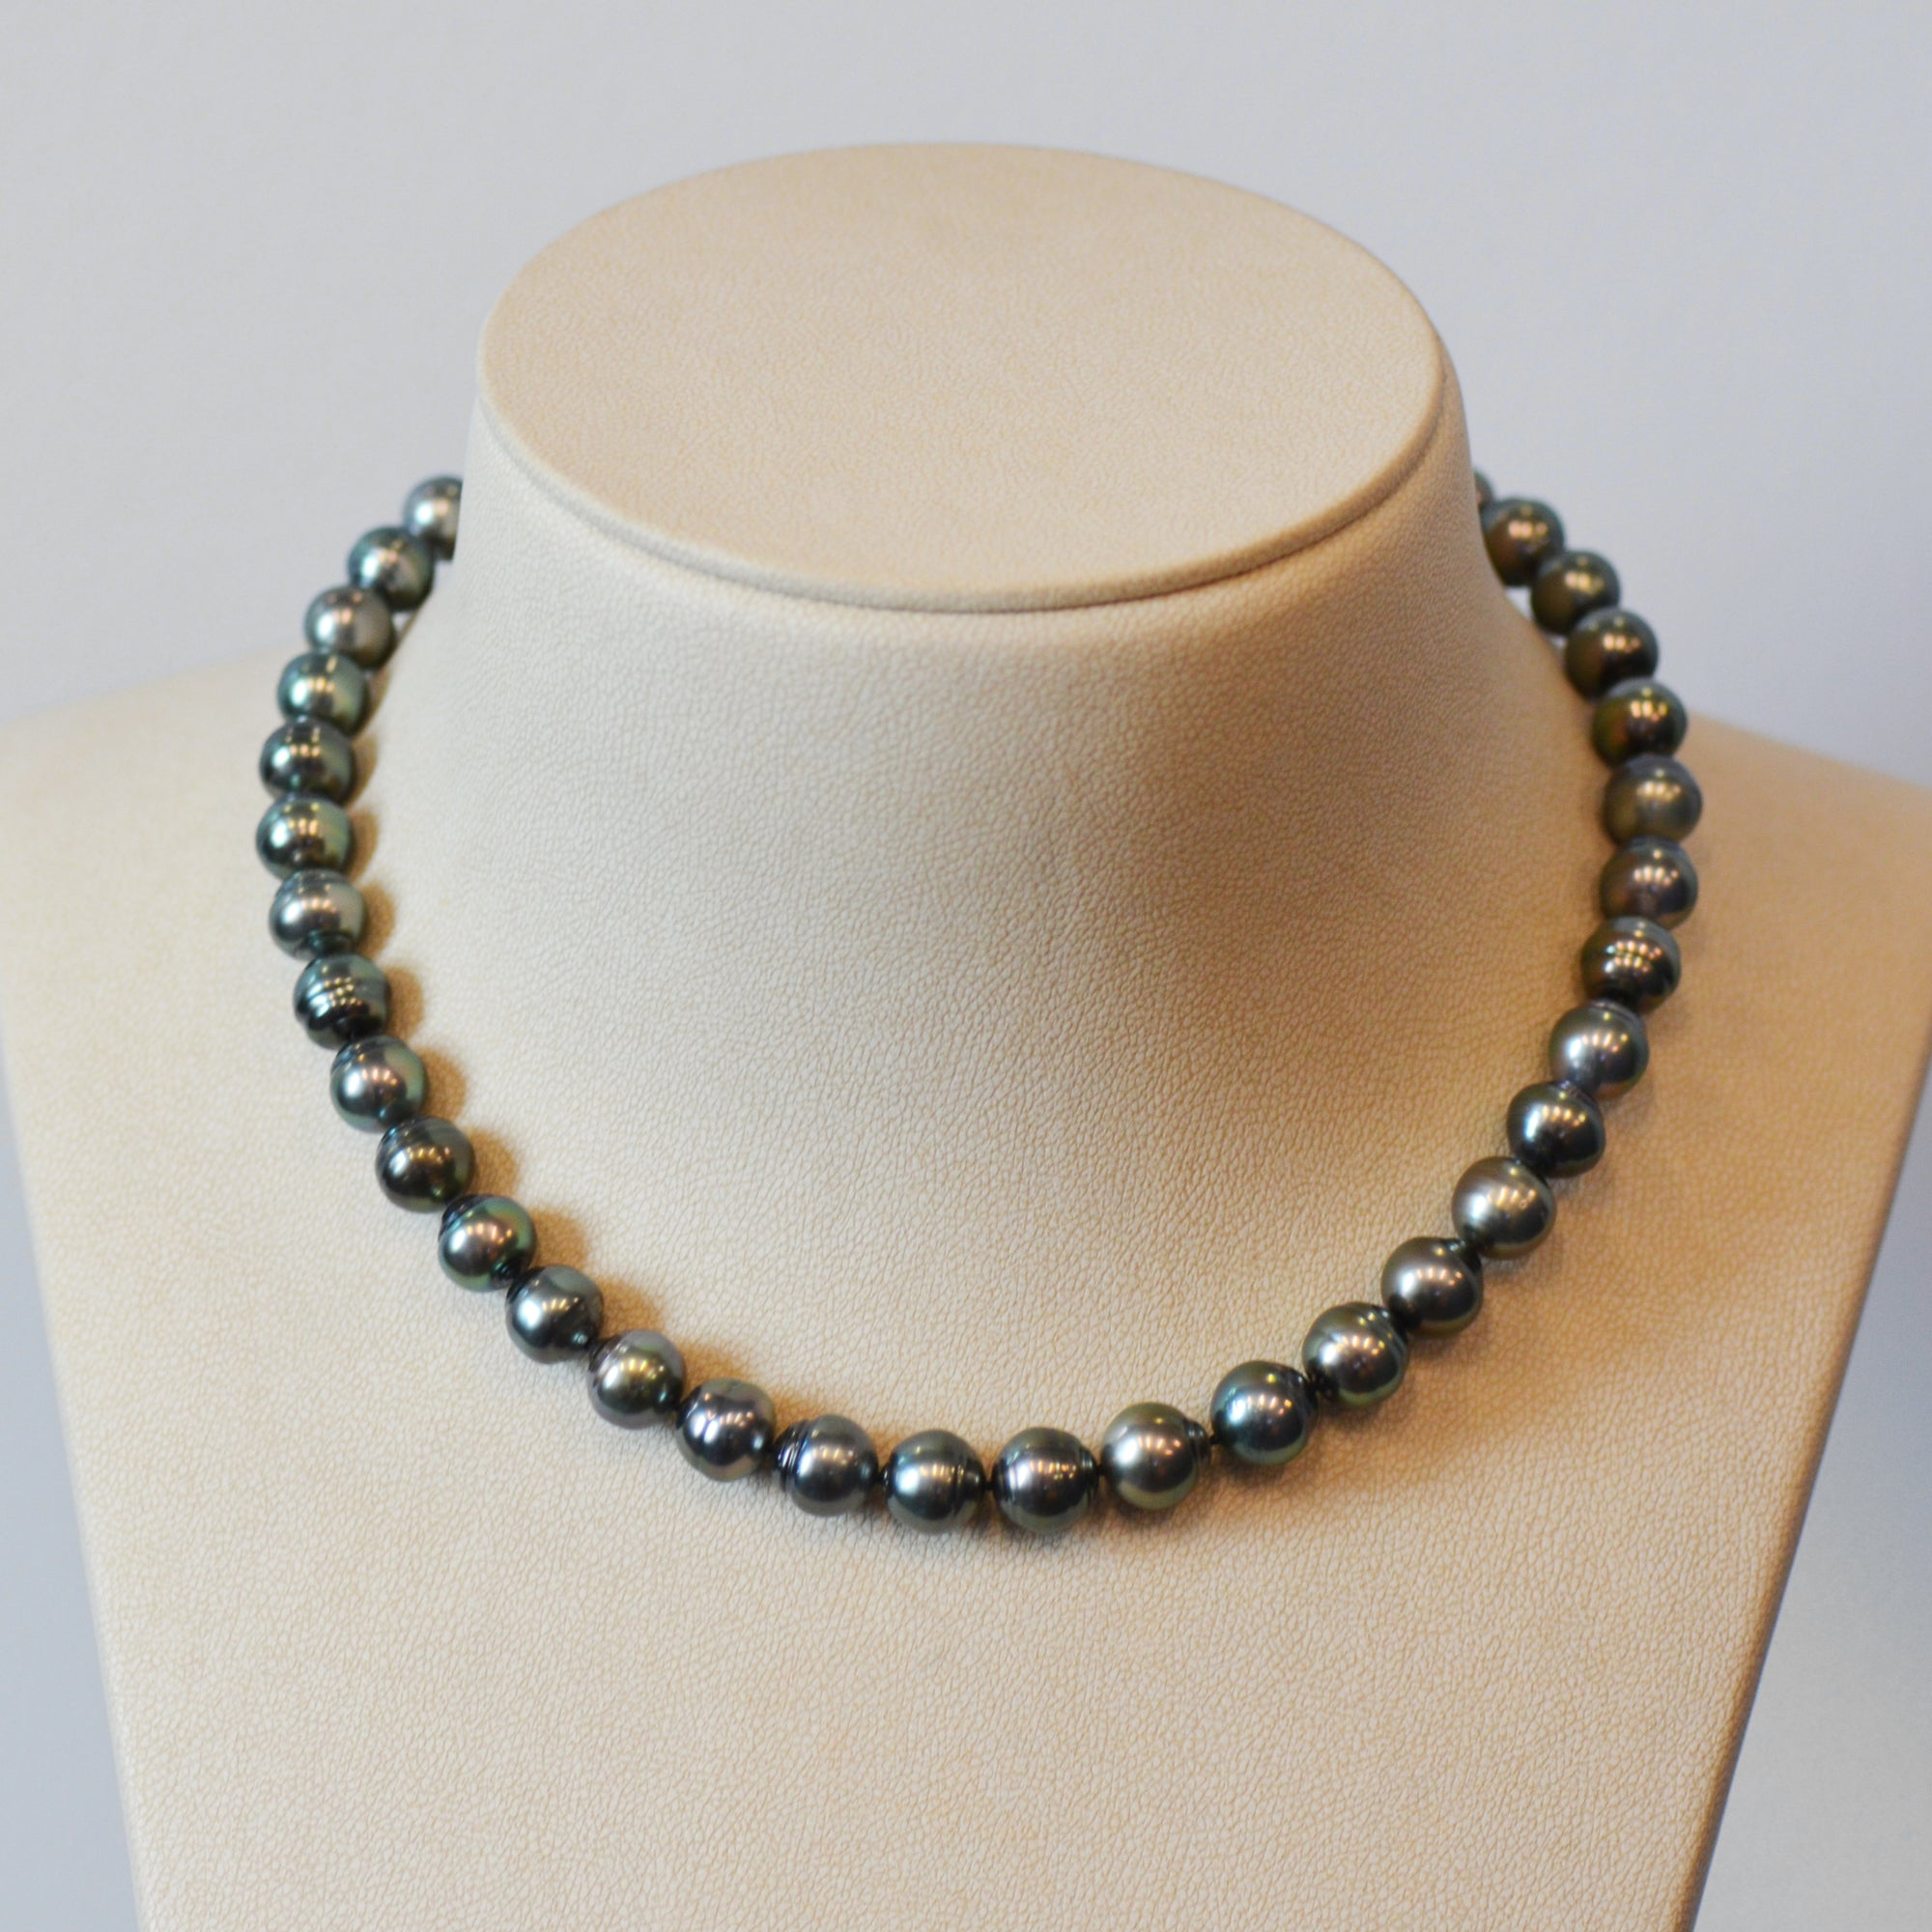 Baroque Tahitian Pearl Necklace With Sterling Silver Clasp